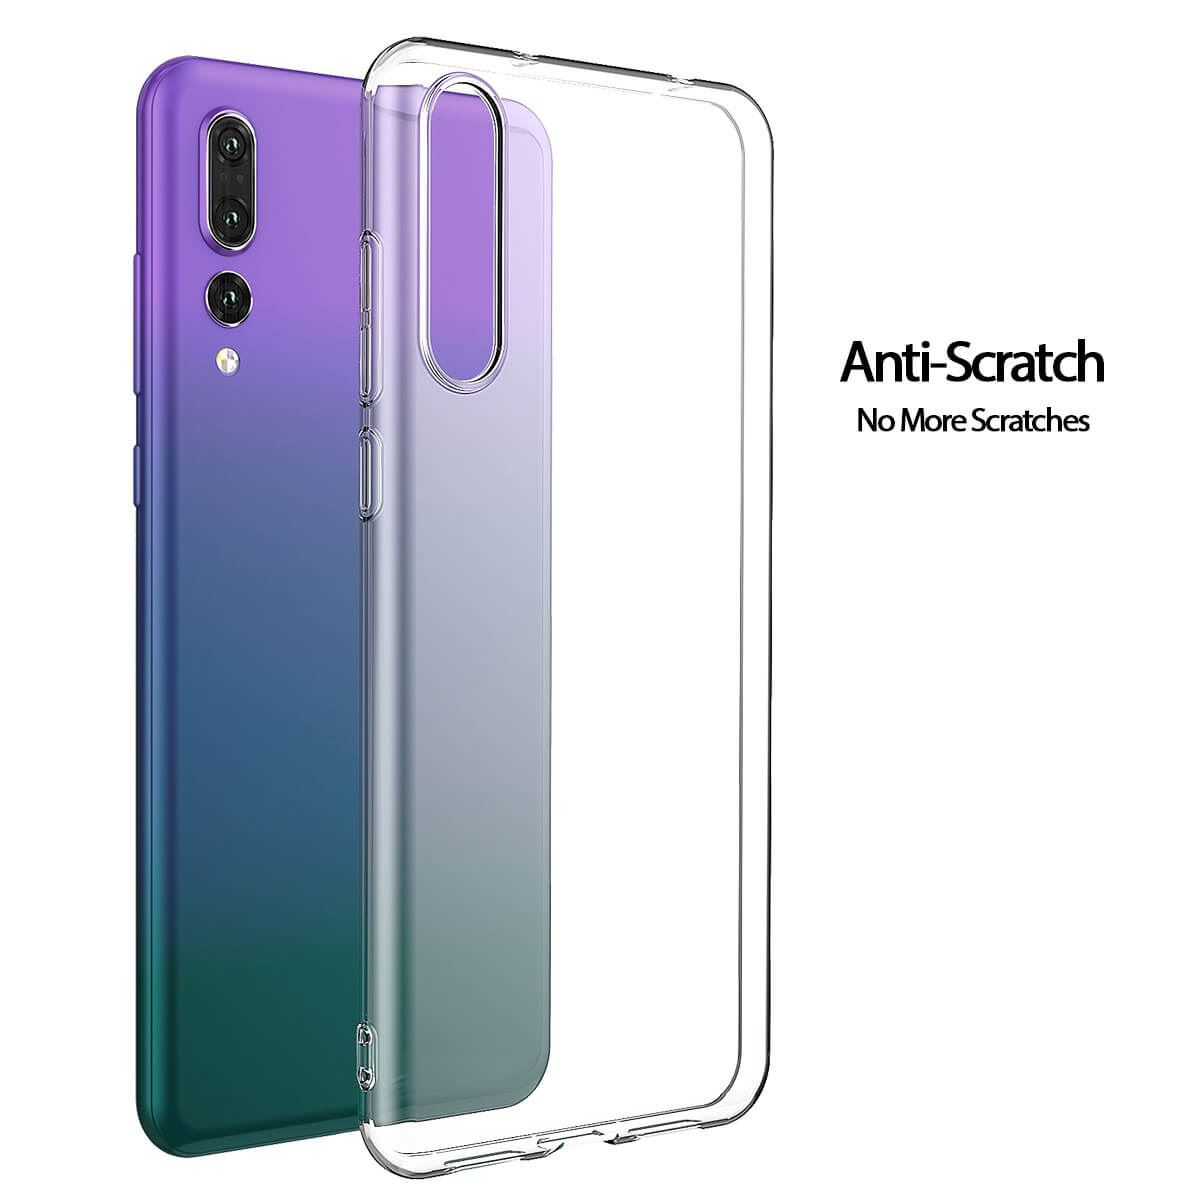 Shockproof-Silicone-Protective-Clear-Gel-Cover-Case-For-Huawei-P20-Pro-P-Smart thumbnail 29